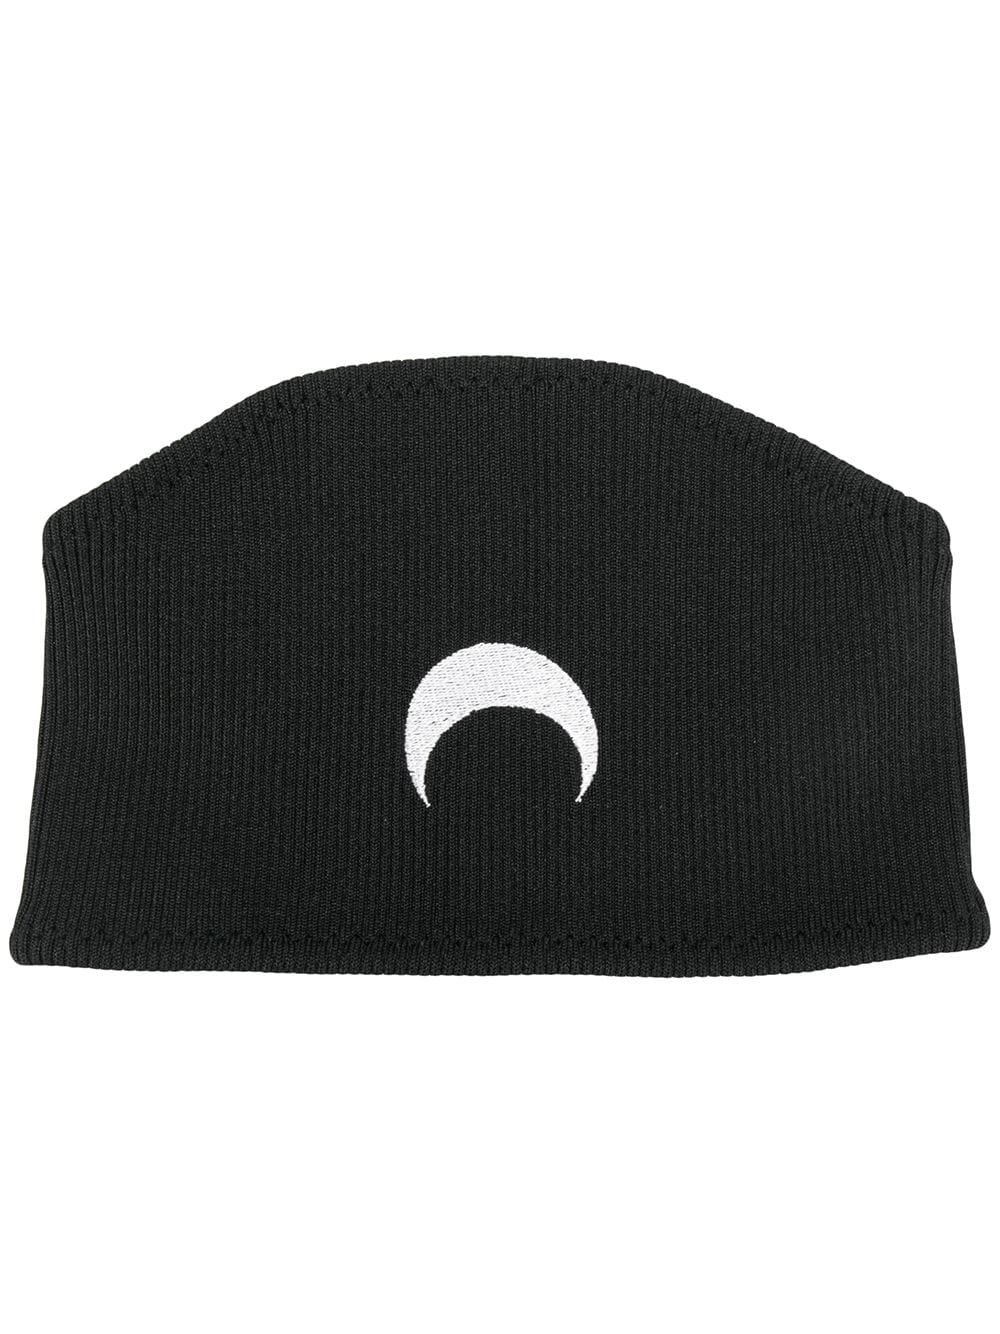 Marine Serre Embroidered Half Moon Headband - Farfetch